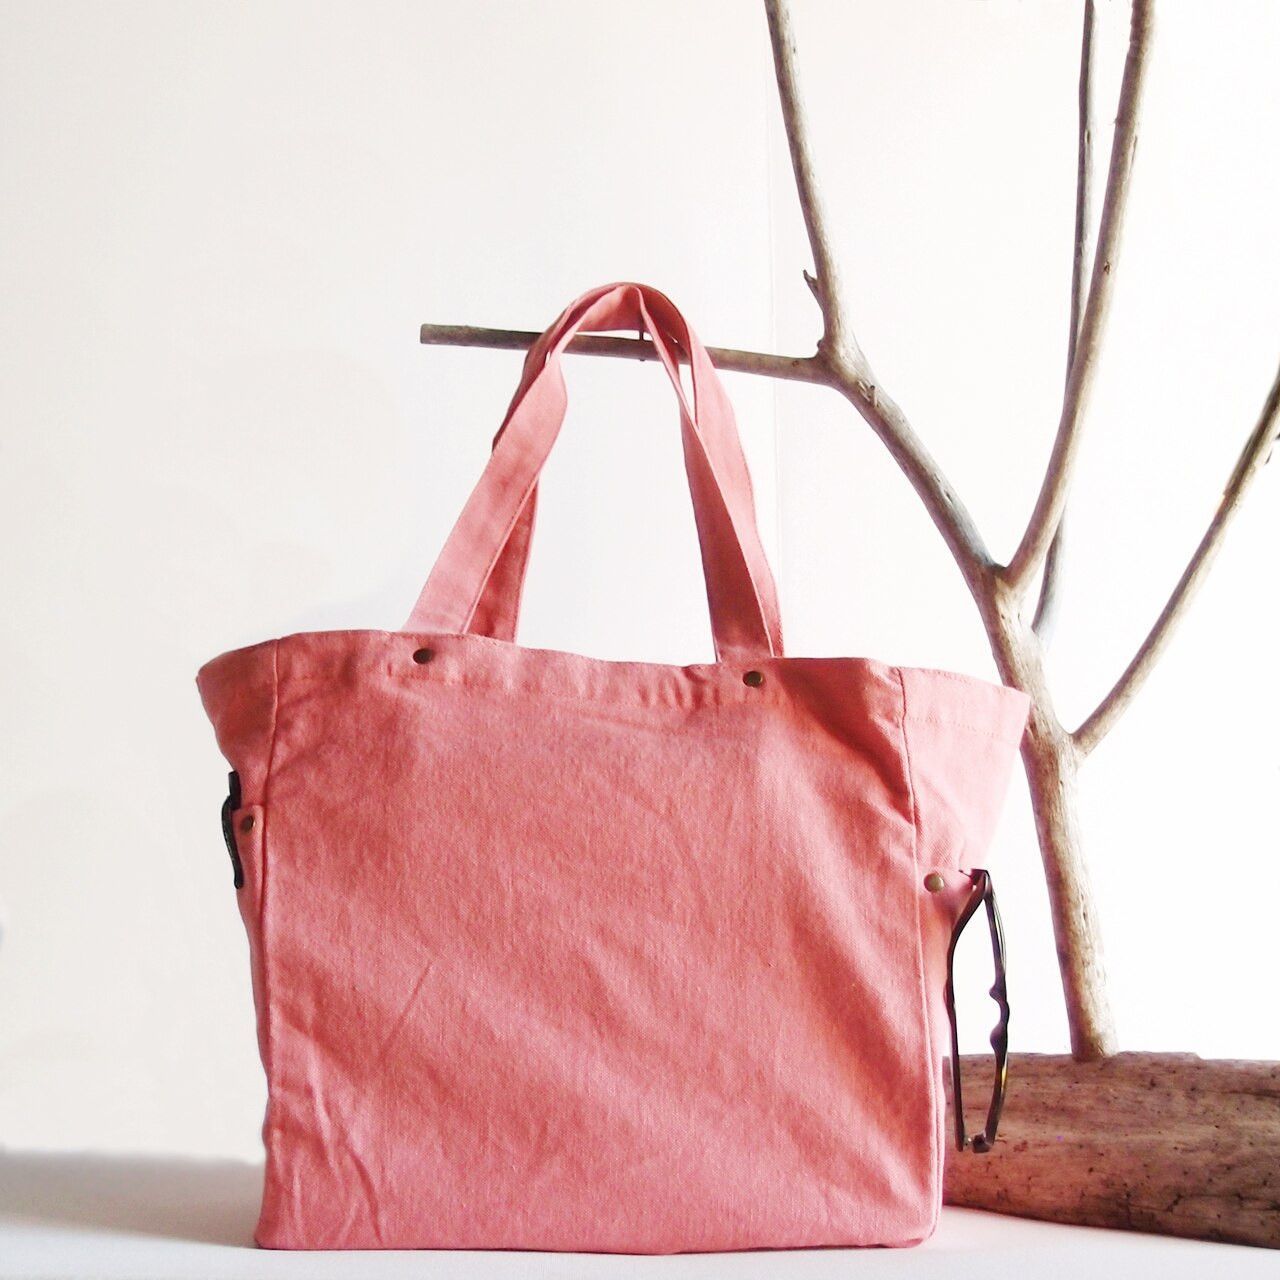 Wholesale Canvas Tote Bags, Washed Canvas Tote Bag with Side Pockets Pink B798-75 | Packaging Decor